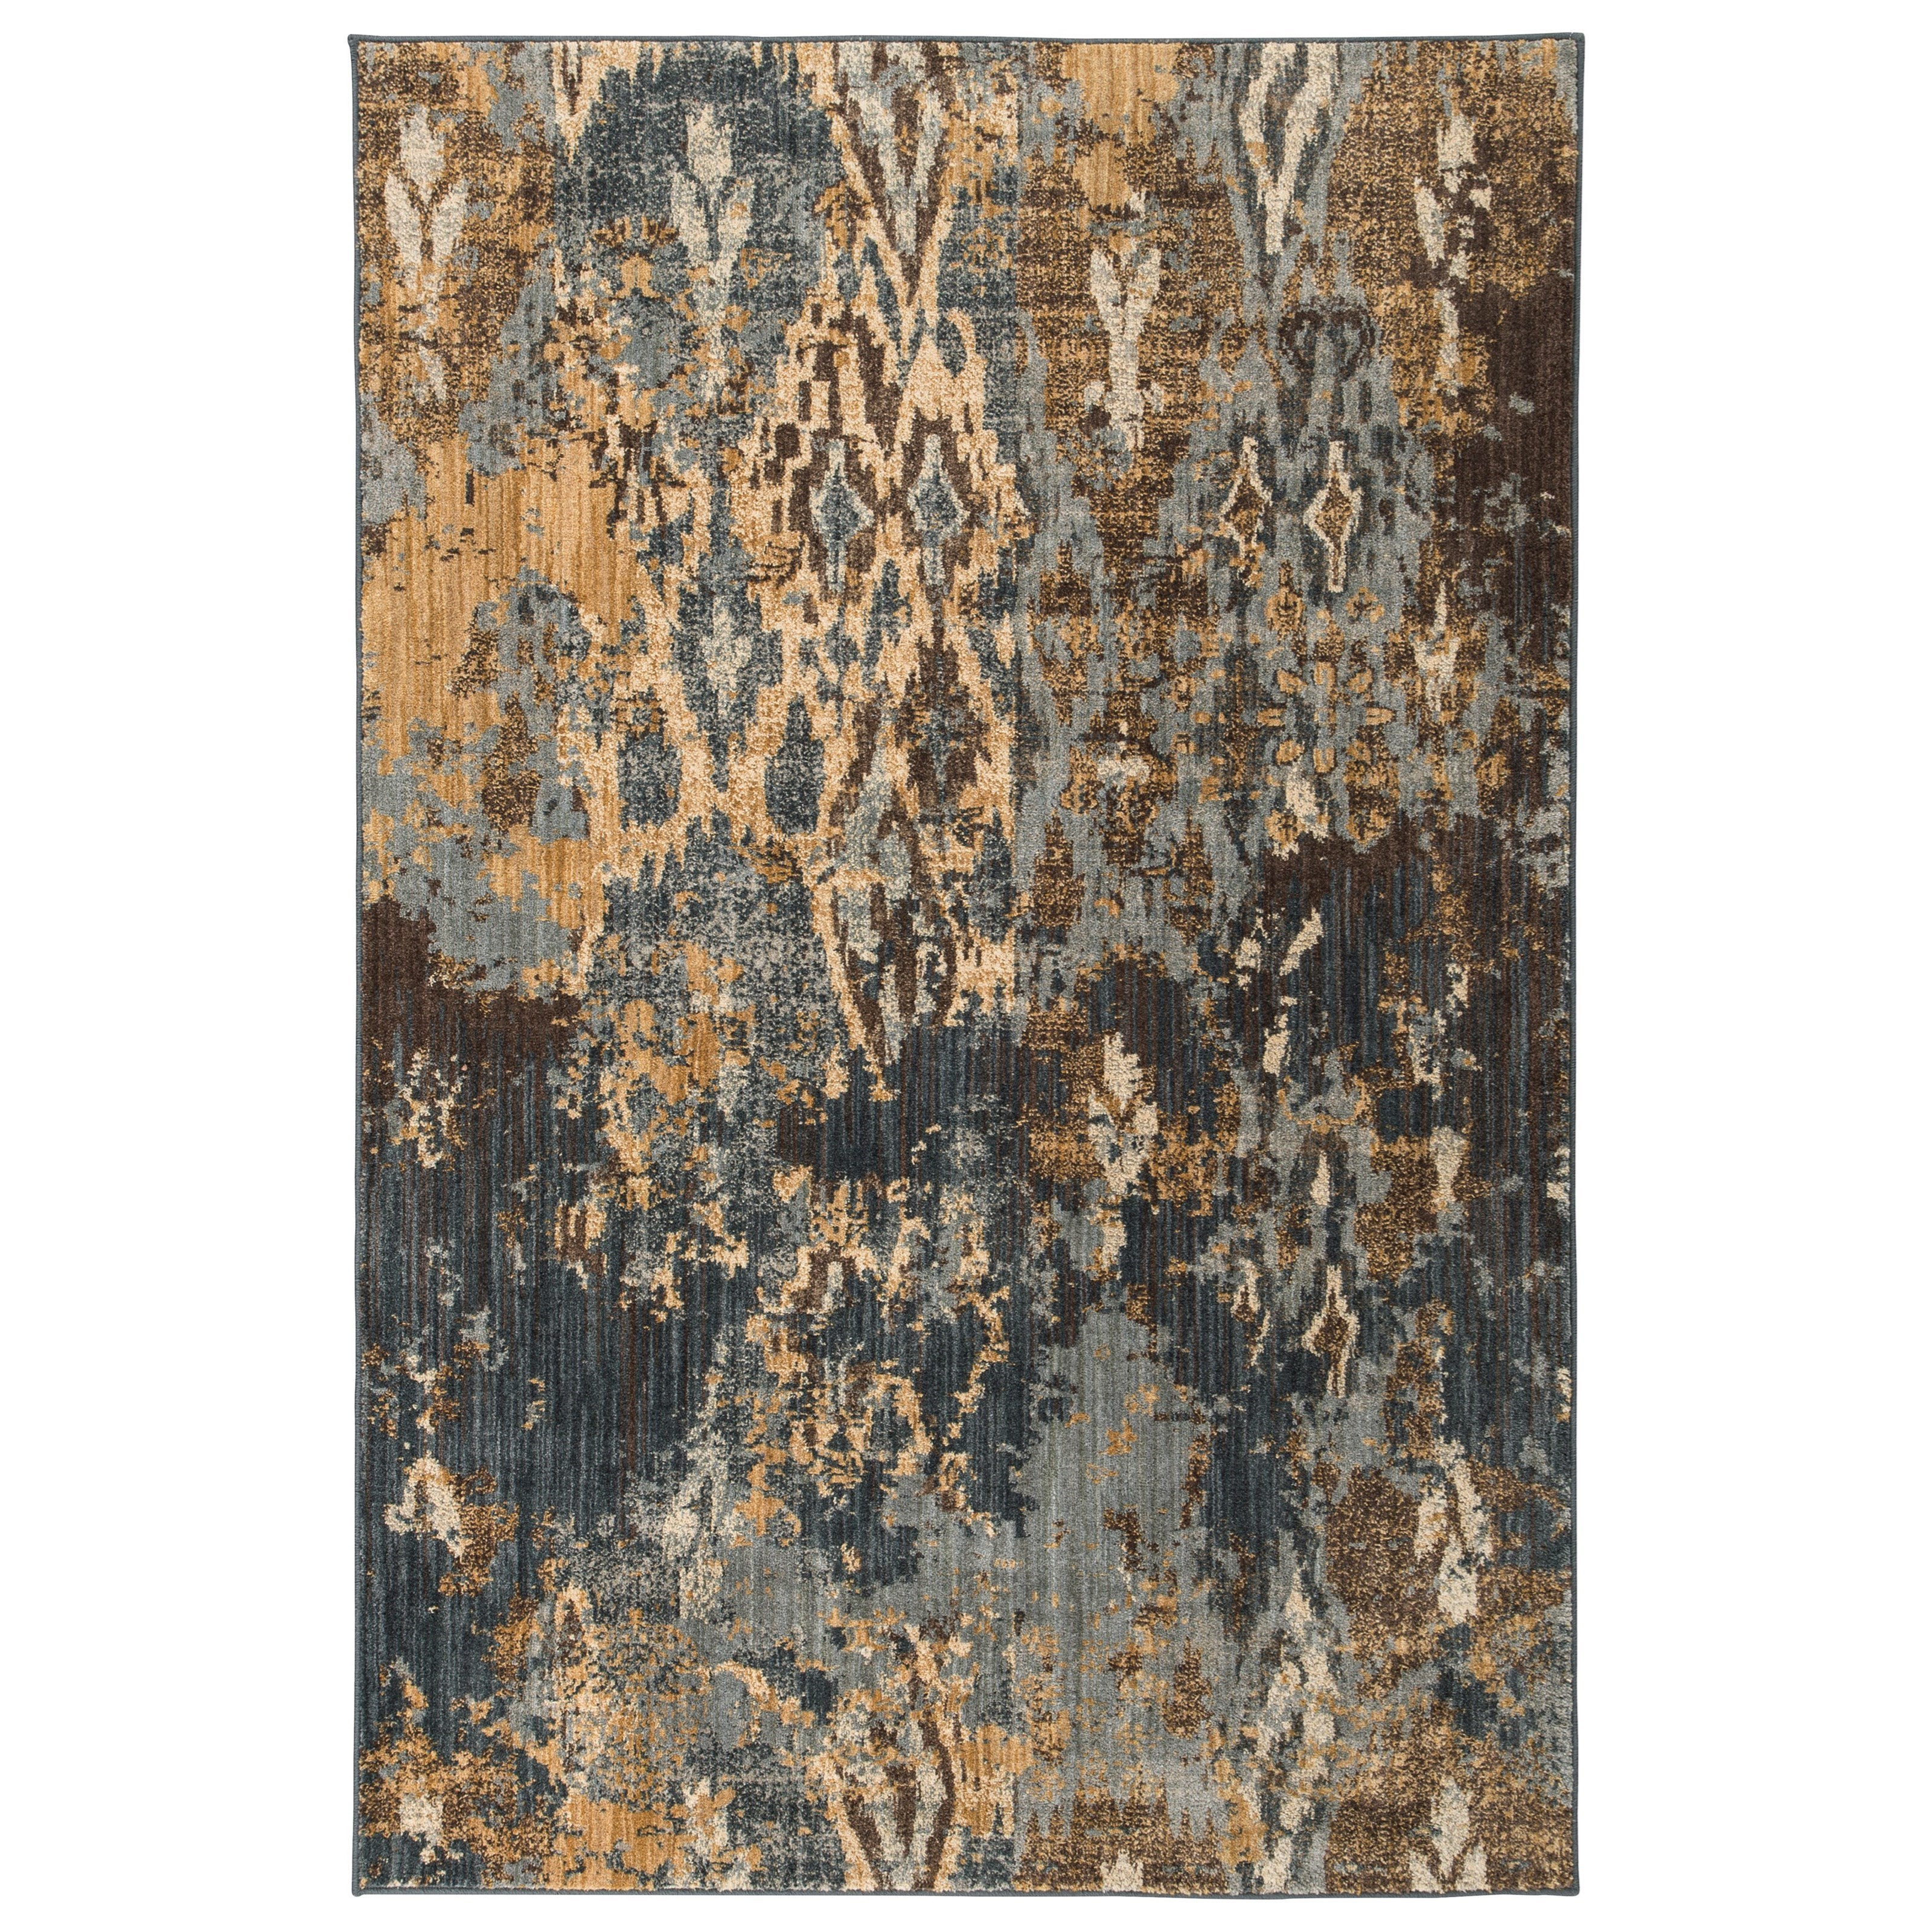 Signature Design by Ashley Contemporary Area Rugs Kayson Blue/Gray/Yellow Medium Rug - Item Number: R402662